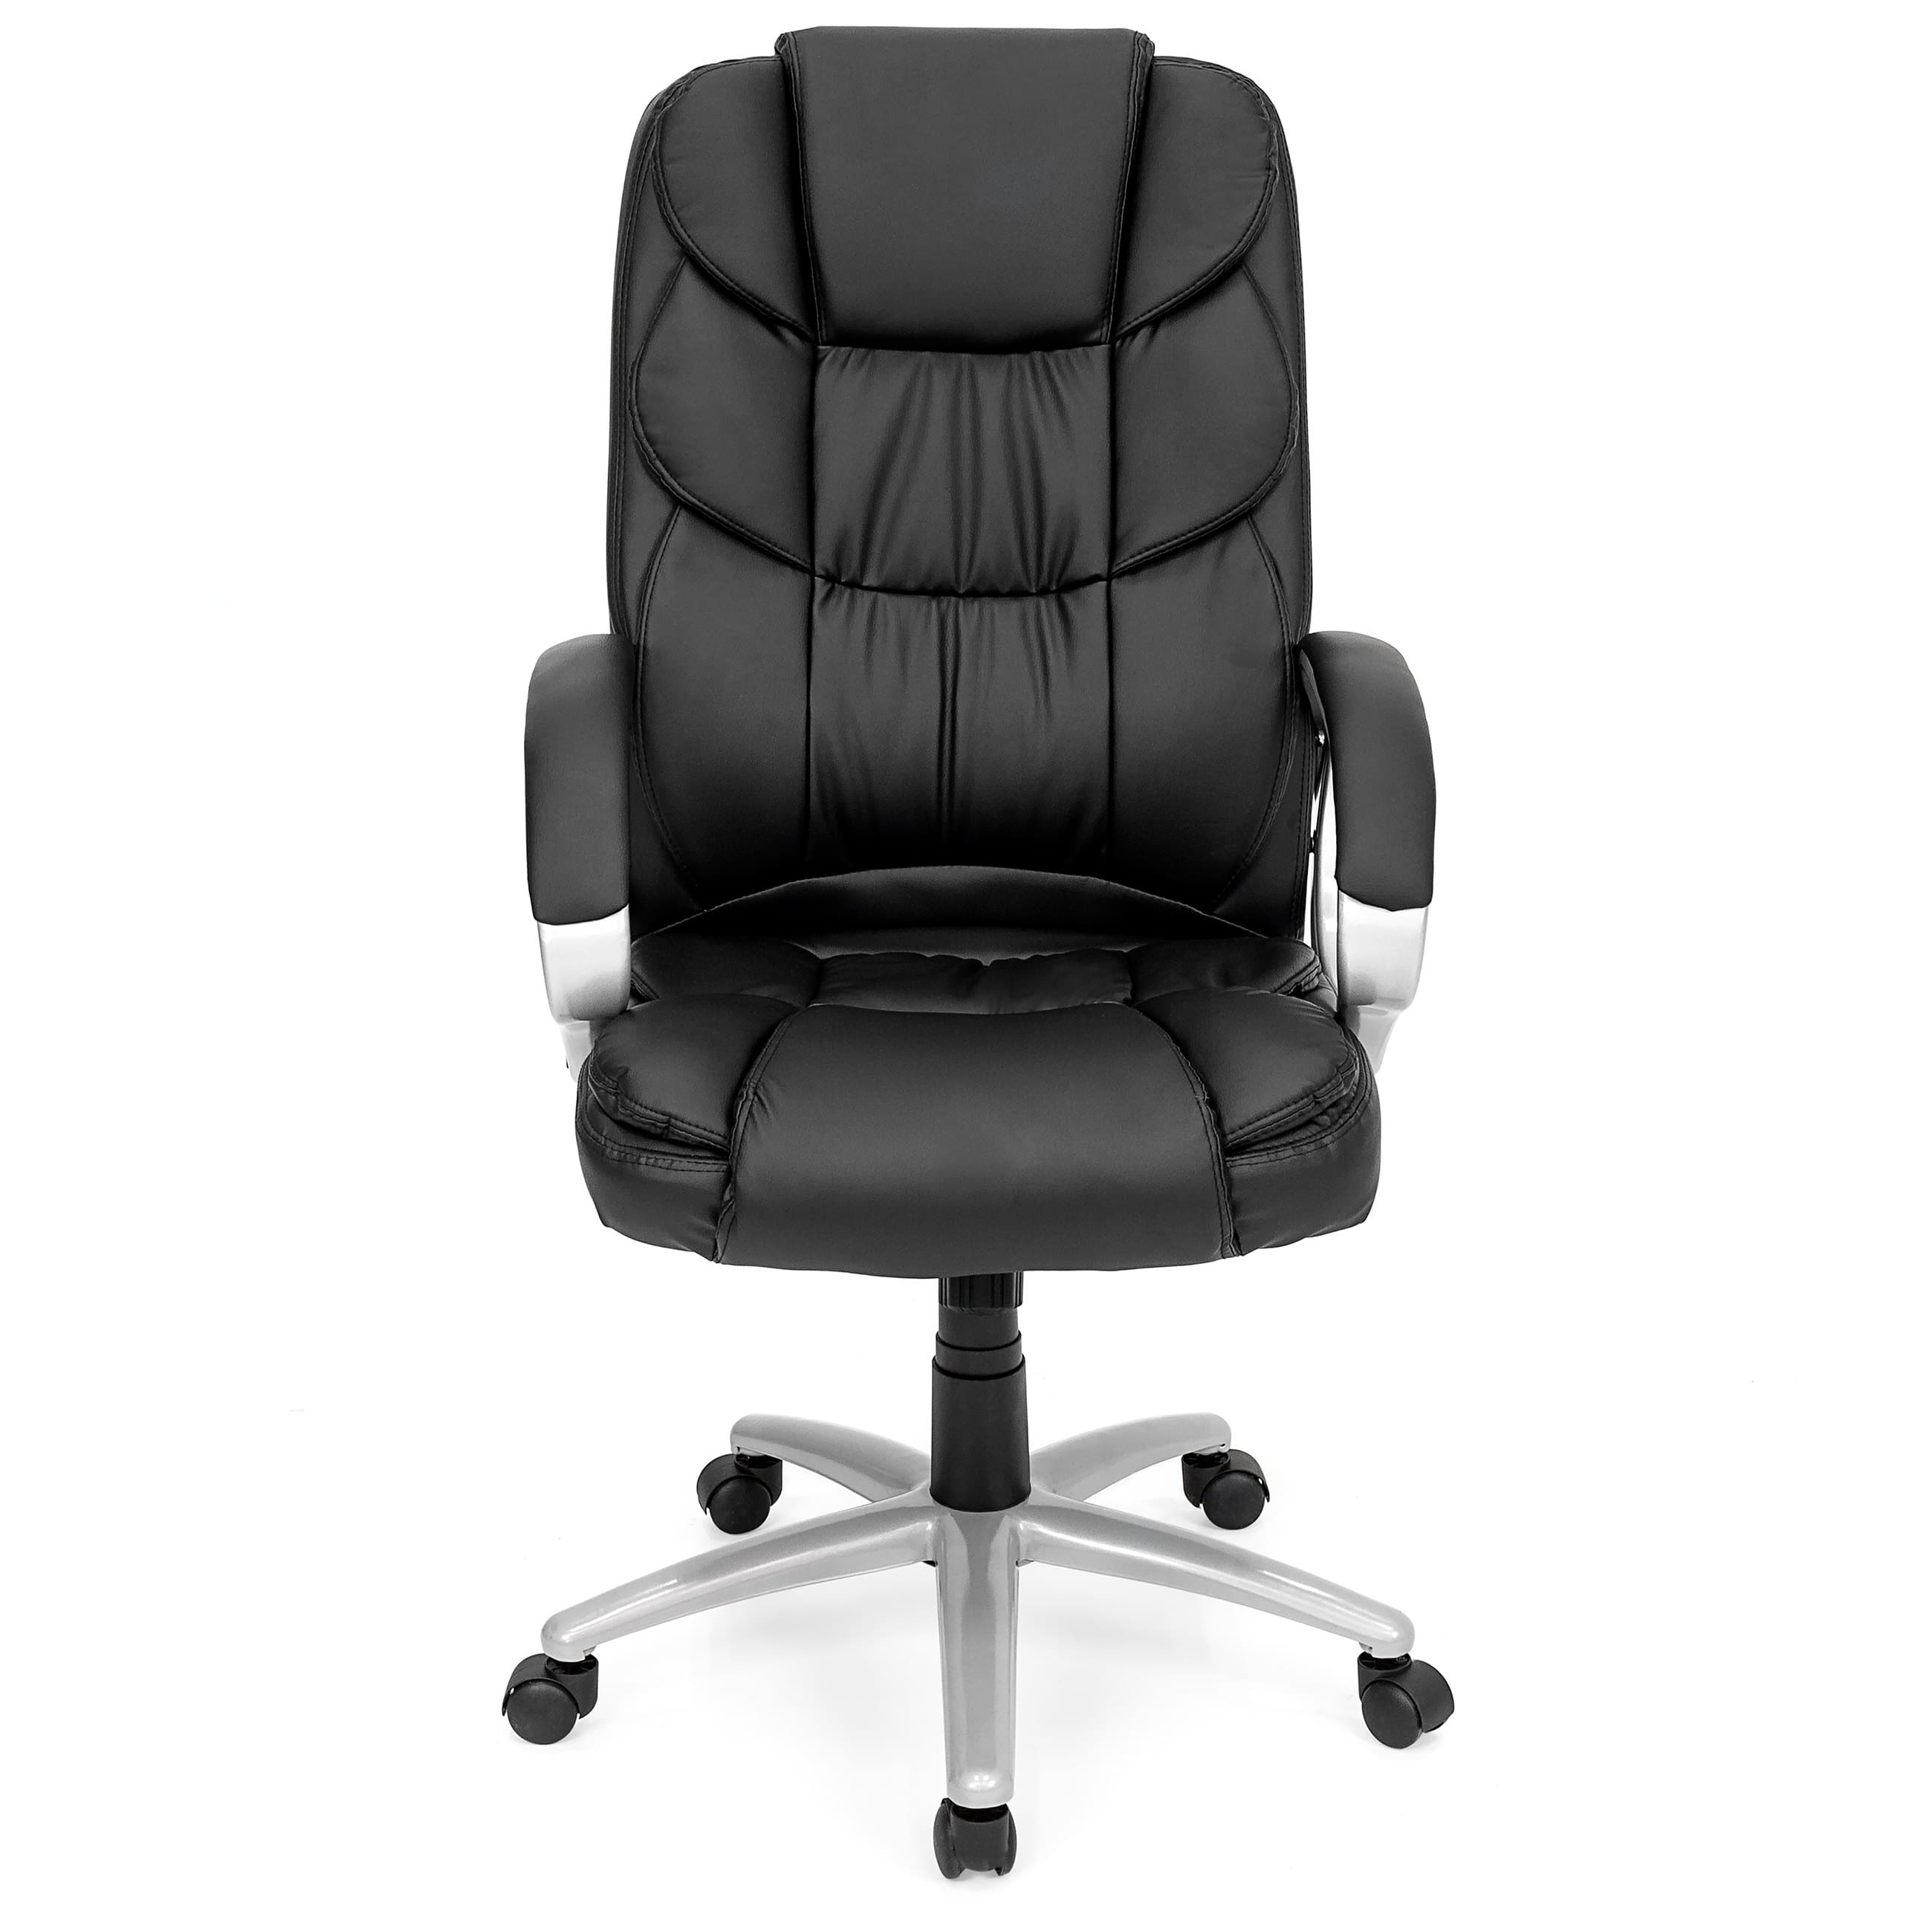 pu leather office chair desk school bcp ergonomic high back executive black 55 99 slickdeals net